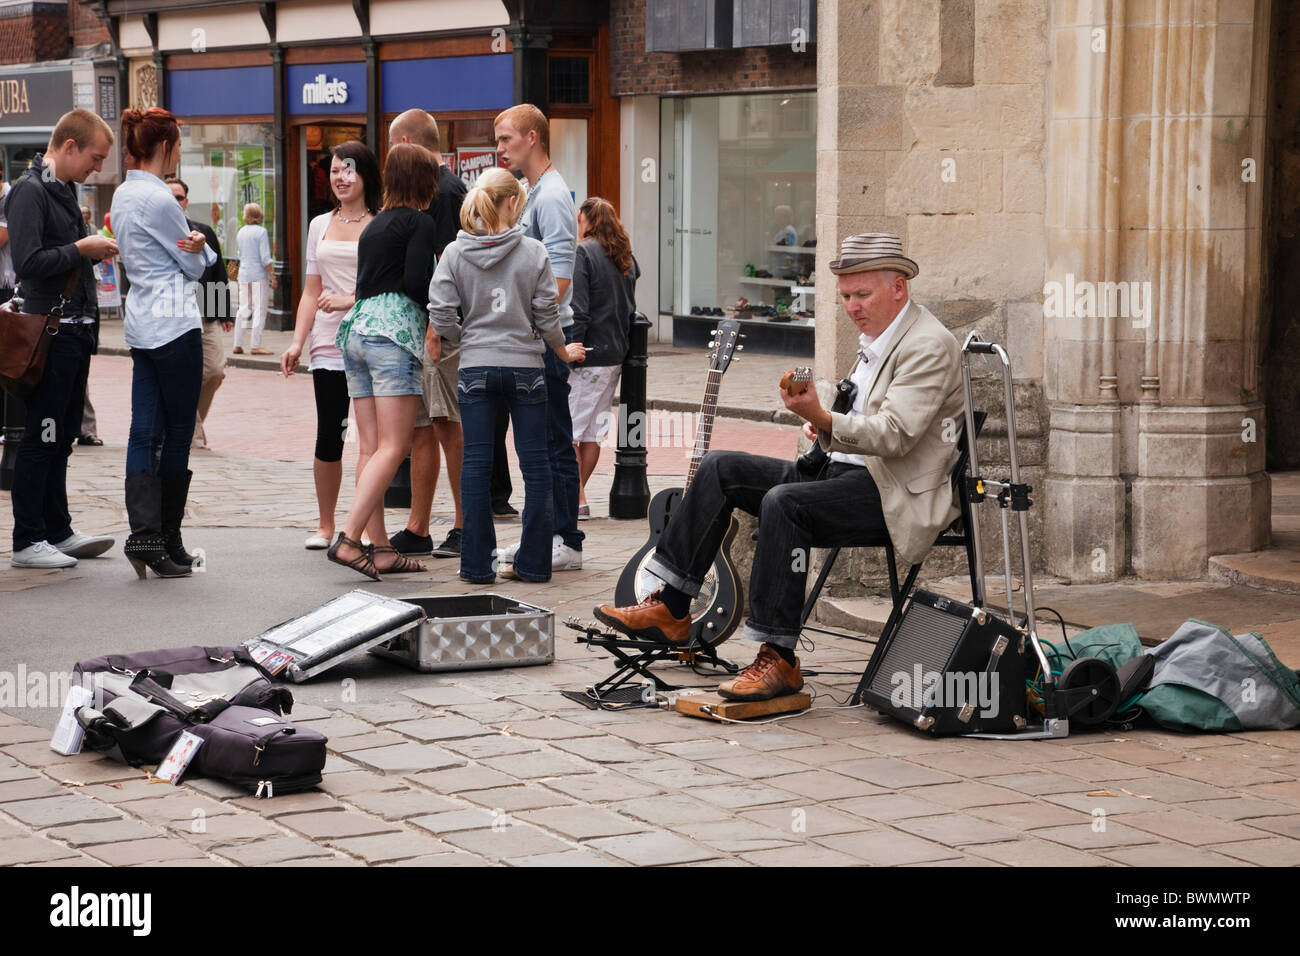 Street busker playing a guitar to collect money by old market cross in city centre in Chichester, West Sussex, England, - Stock Image